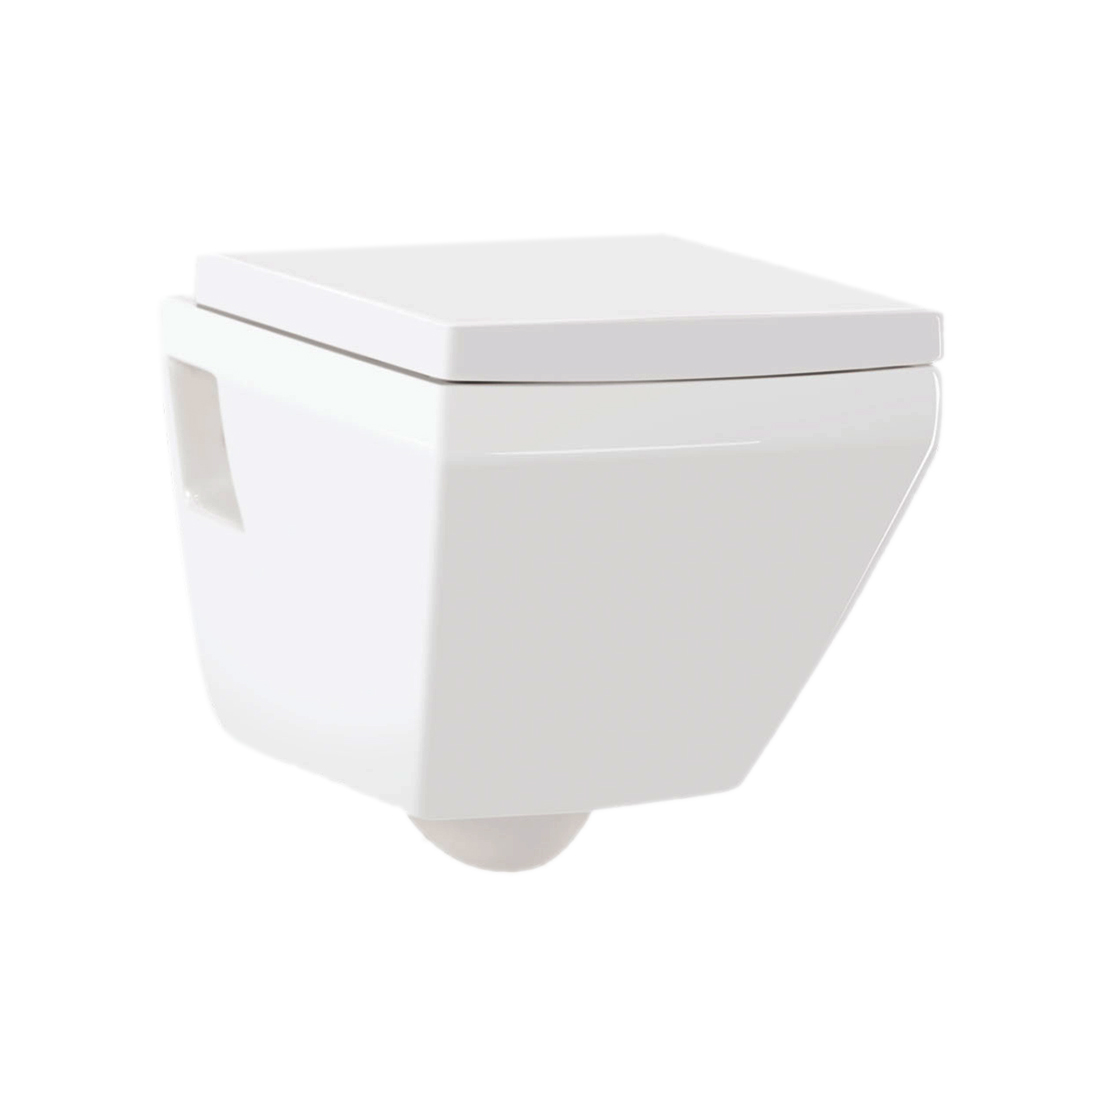 Kerovit Dominic KB026 Wall Hung European Water Closet With Seat Cover